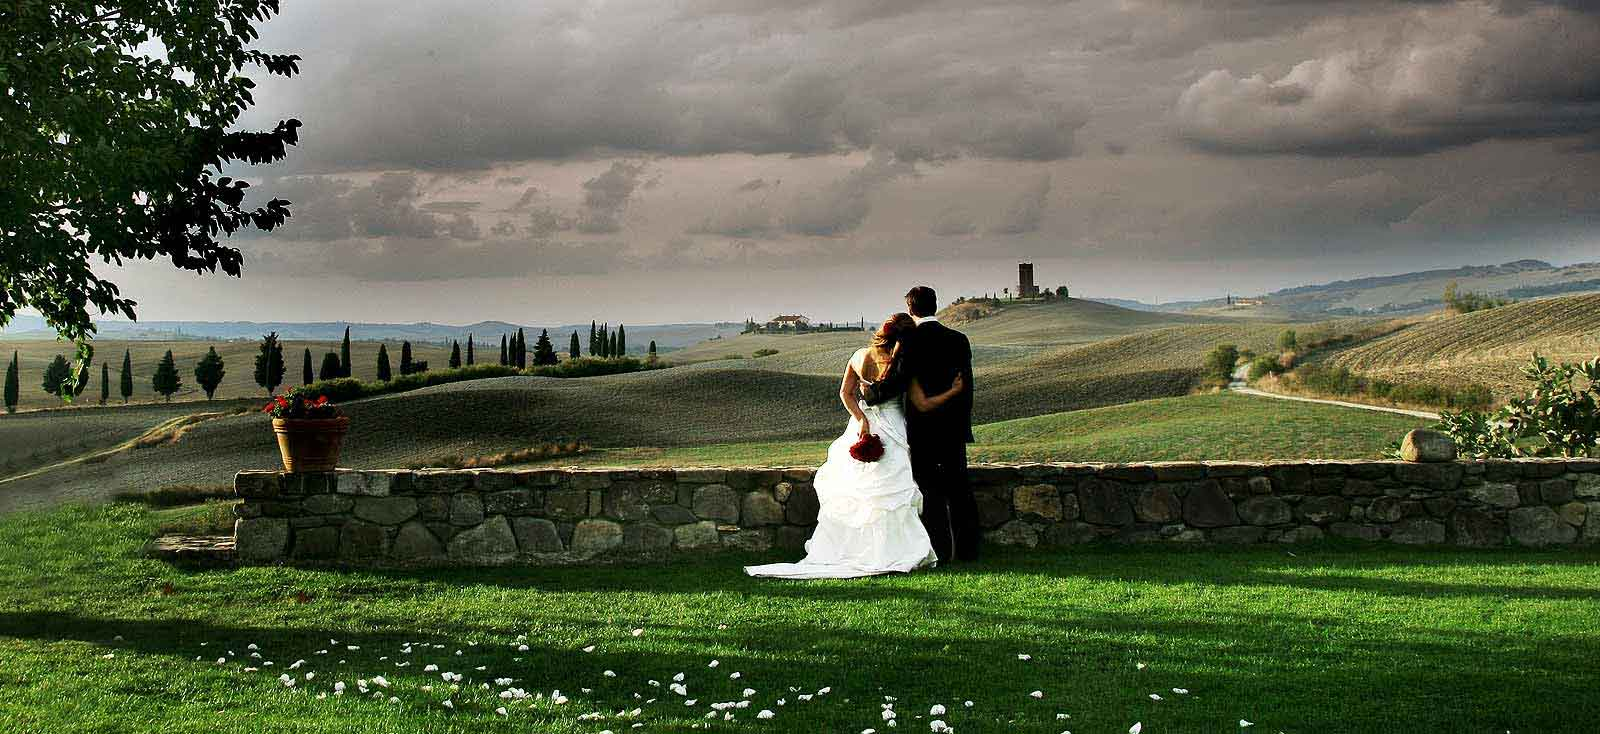 Wedding In Tuscany Wedding Planner In Tuscany